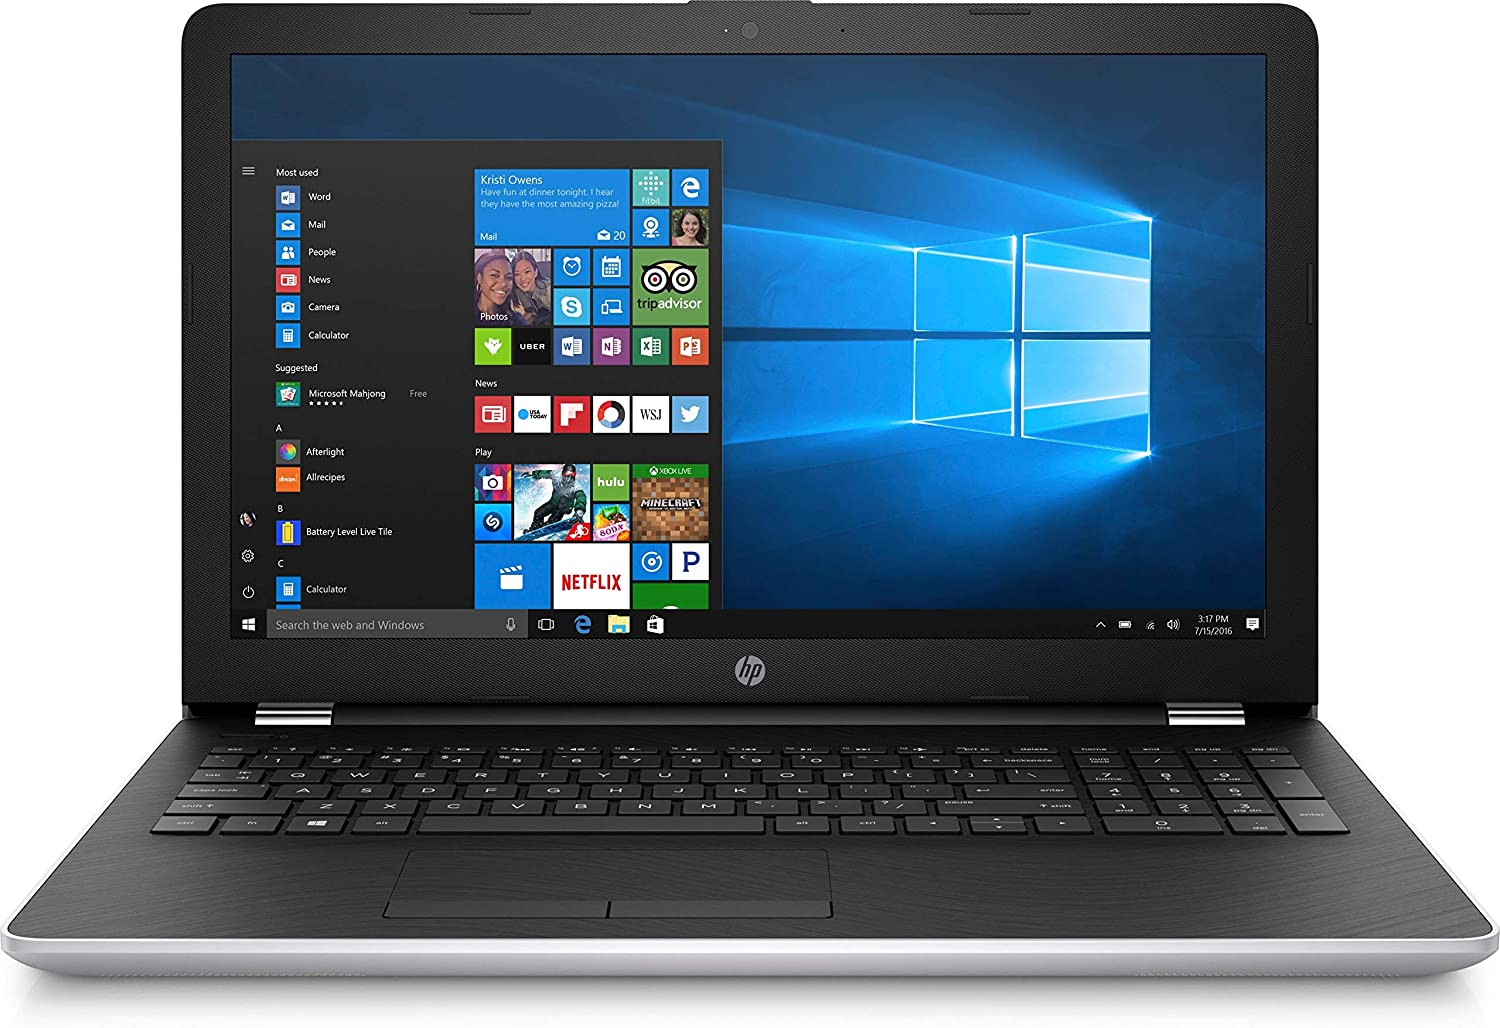 "HP Jaguar 15-bs070wm, 15.6"" Natural Silver Touch Screen Laptop, Windows 10, Intel Core i5-7200U Processor, 8GB Memory, 1TB Hard Drive"